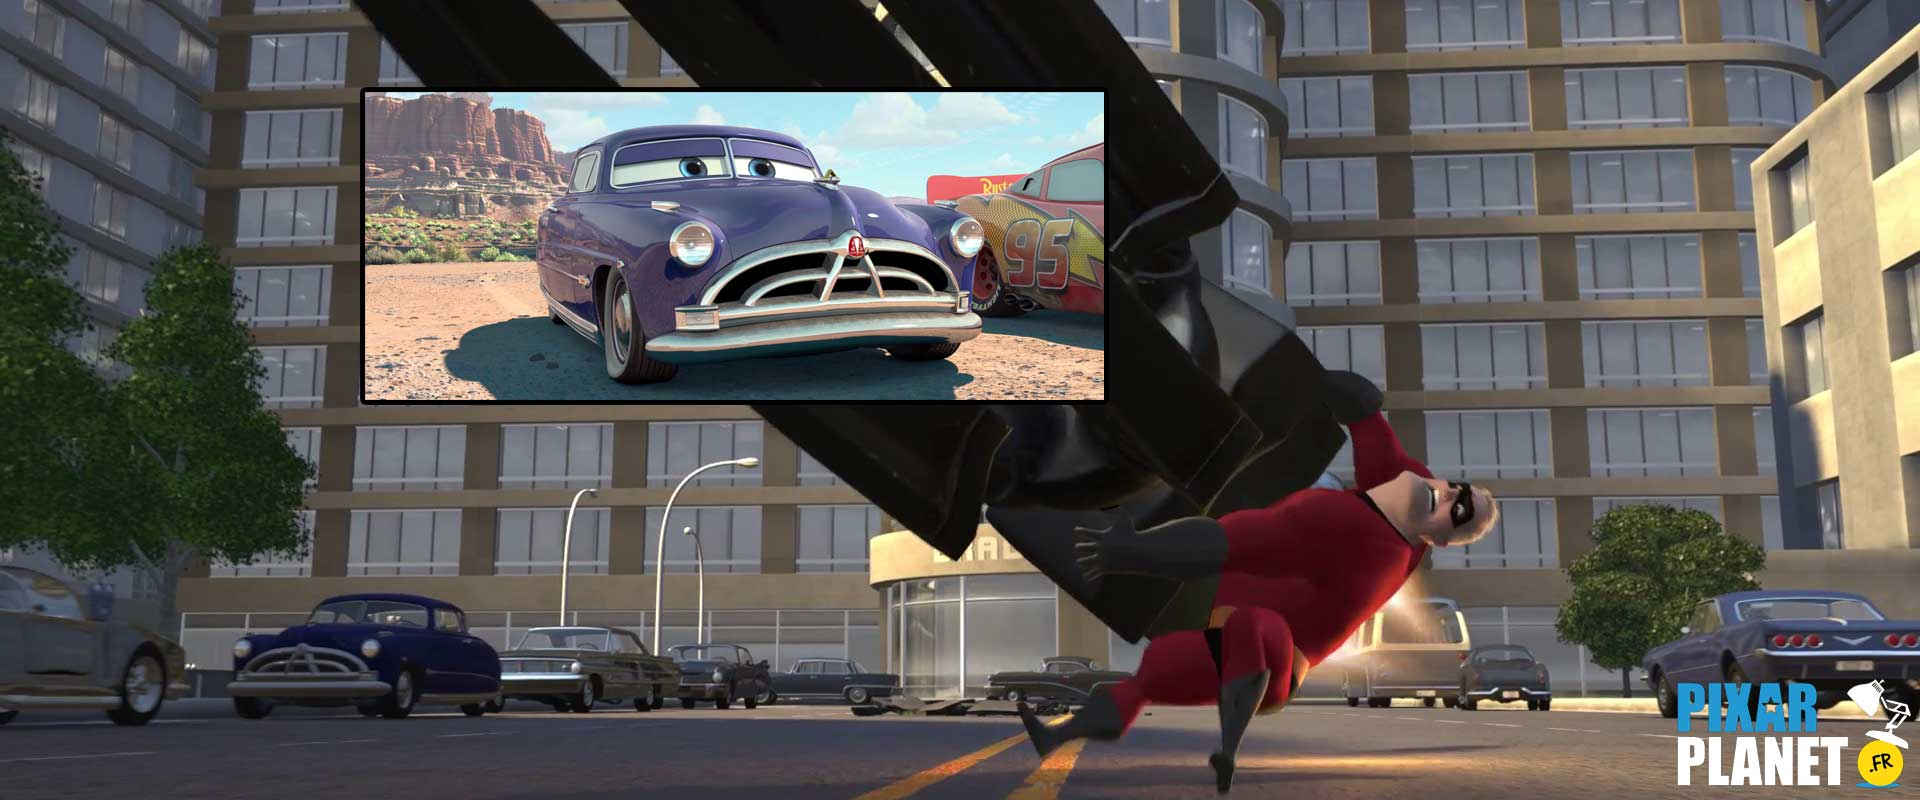 clin oeil les indestructibles pixar disney easter egg incredibles